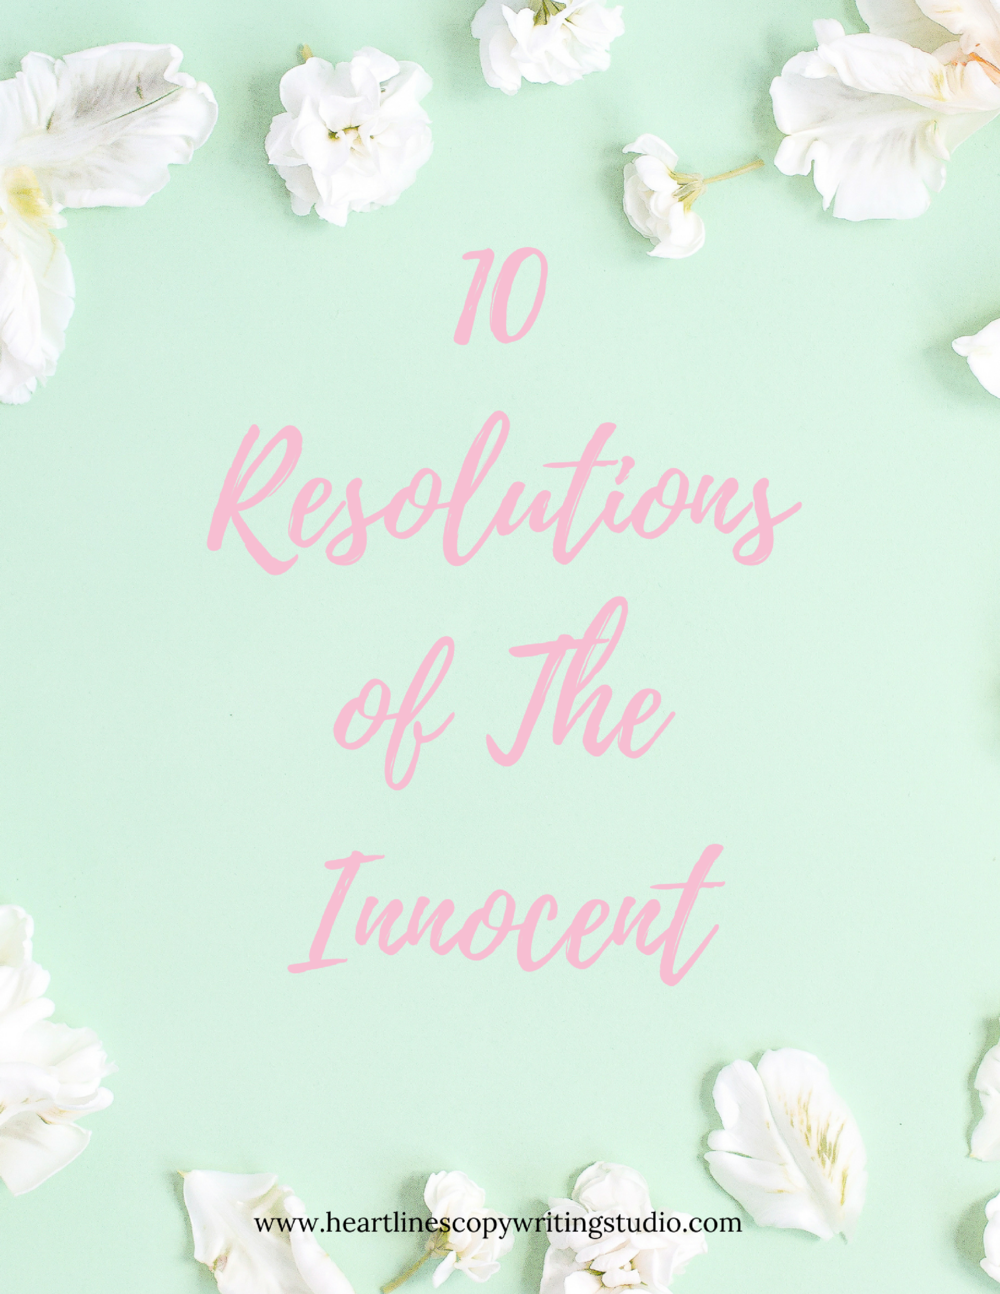 Download the PDF version of The 10 Resolutions of The Innocent right here.